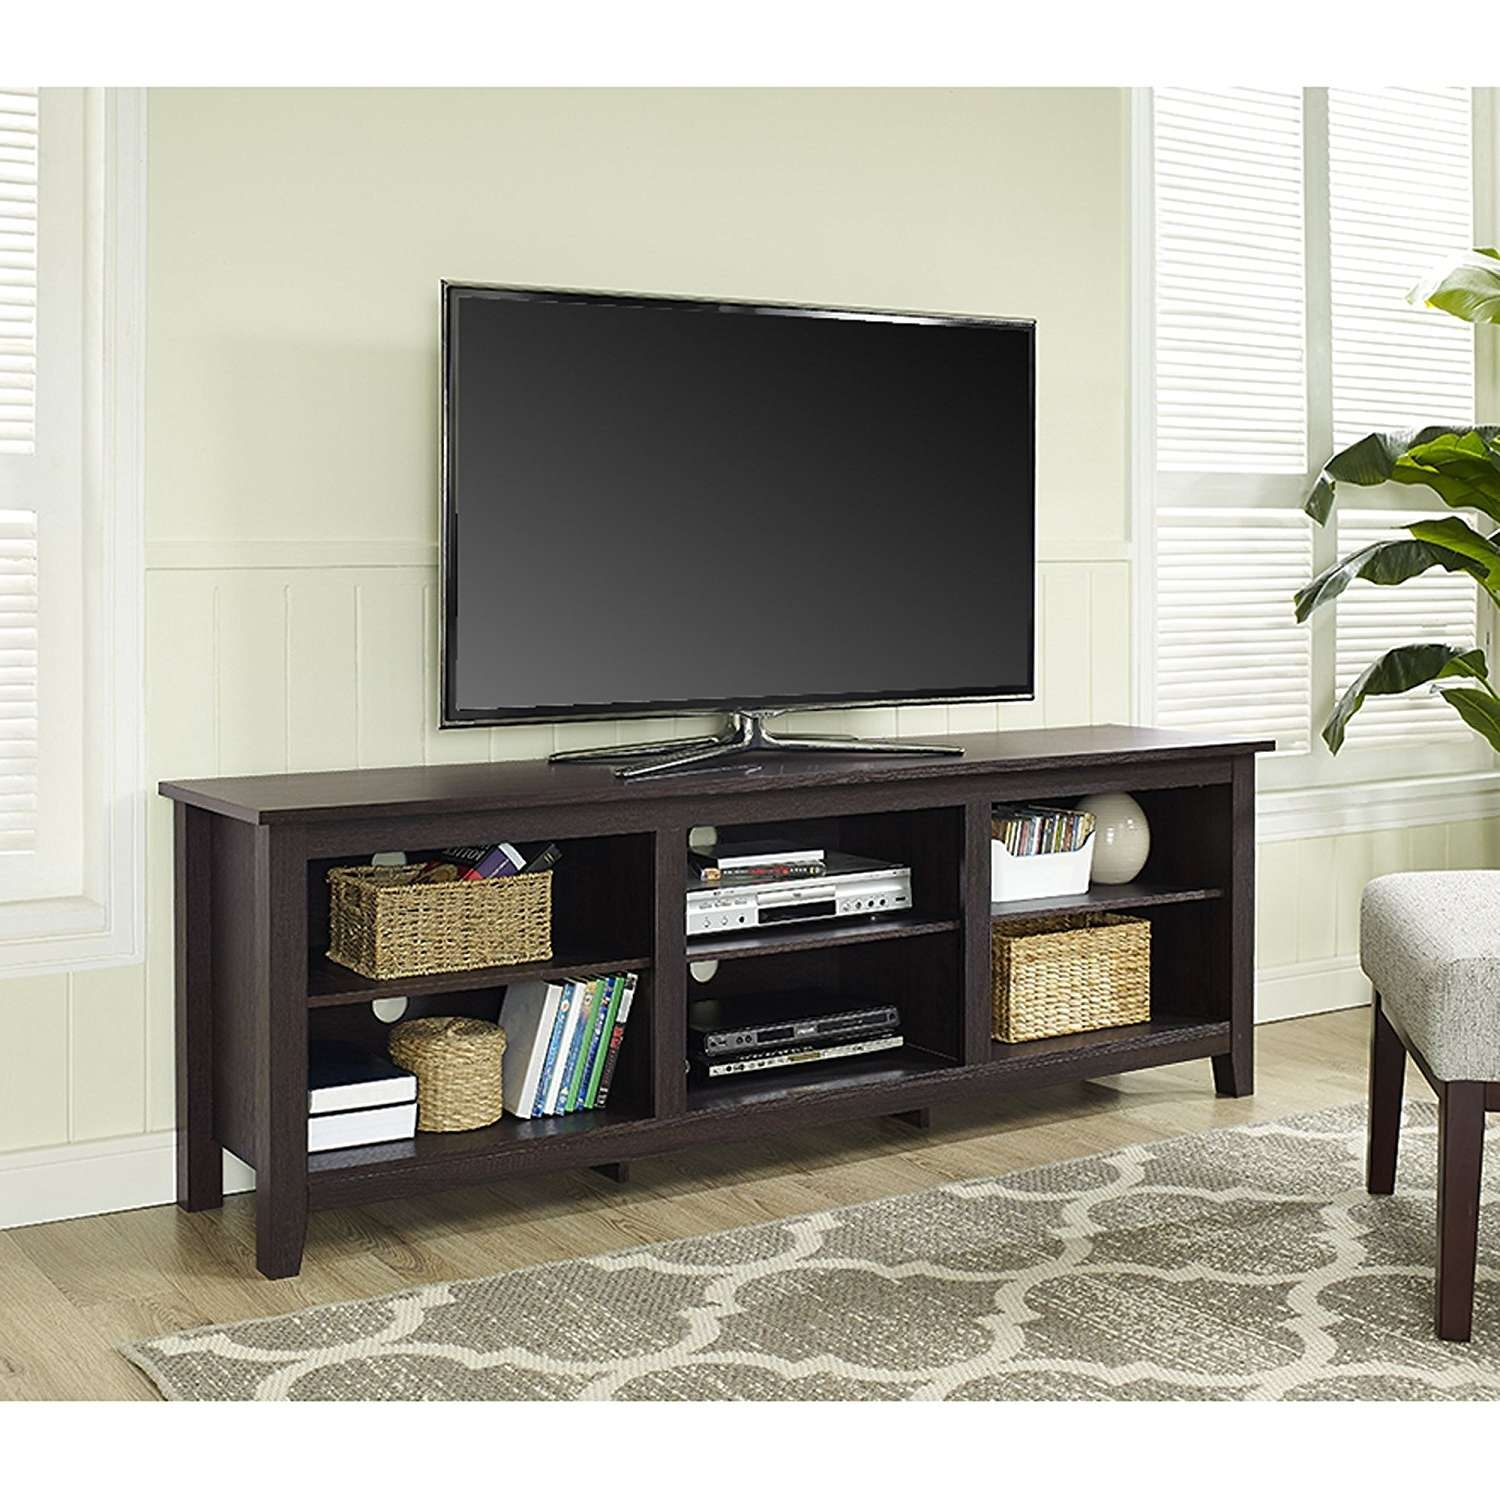 Console Tables : Cool Skinny Console Table With Storage About Regarding Long Tv Cabinets Furniture (View 13 of 20)